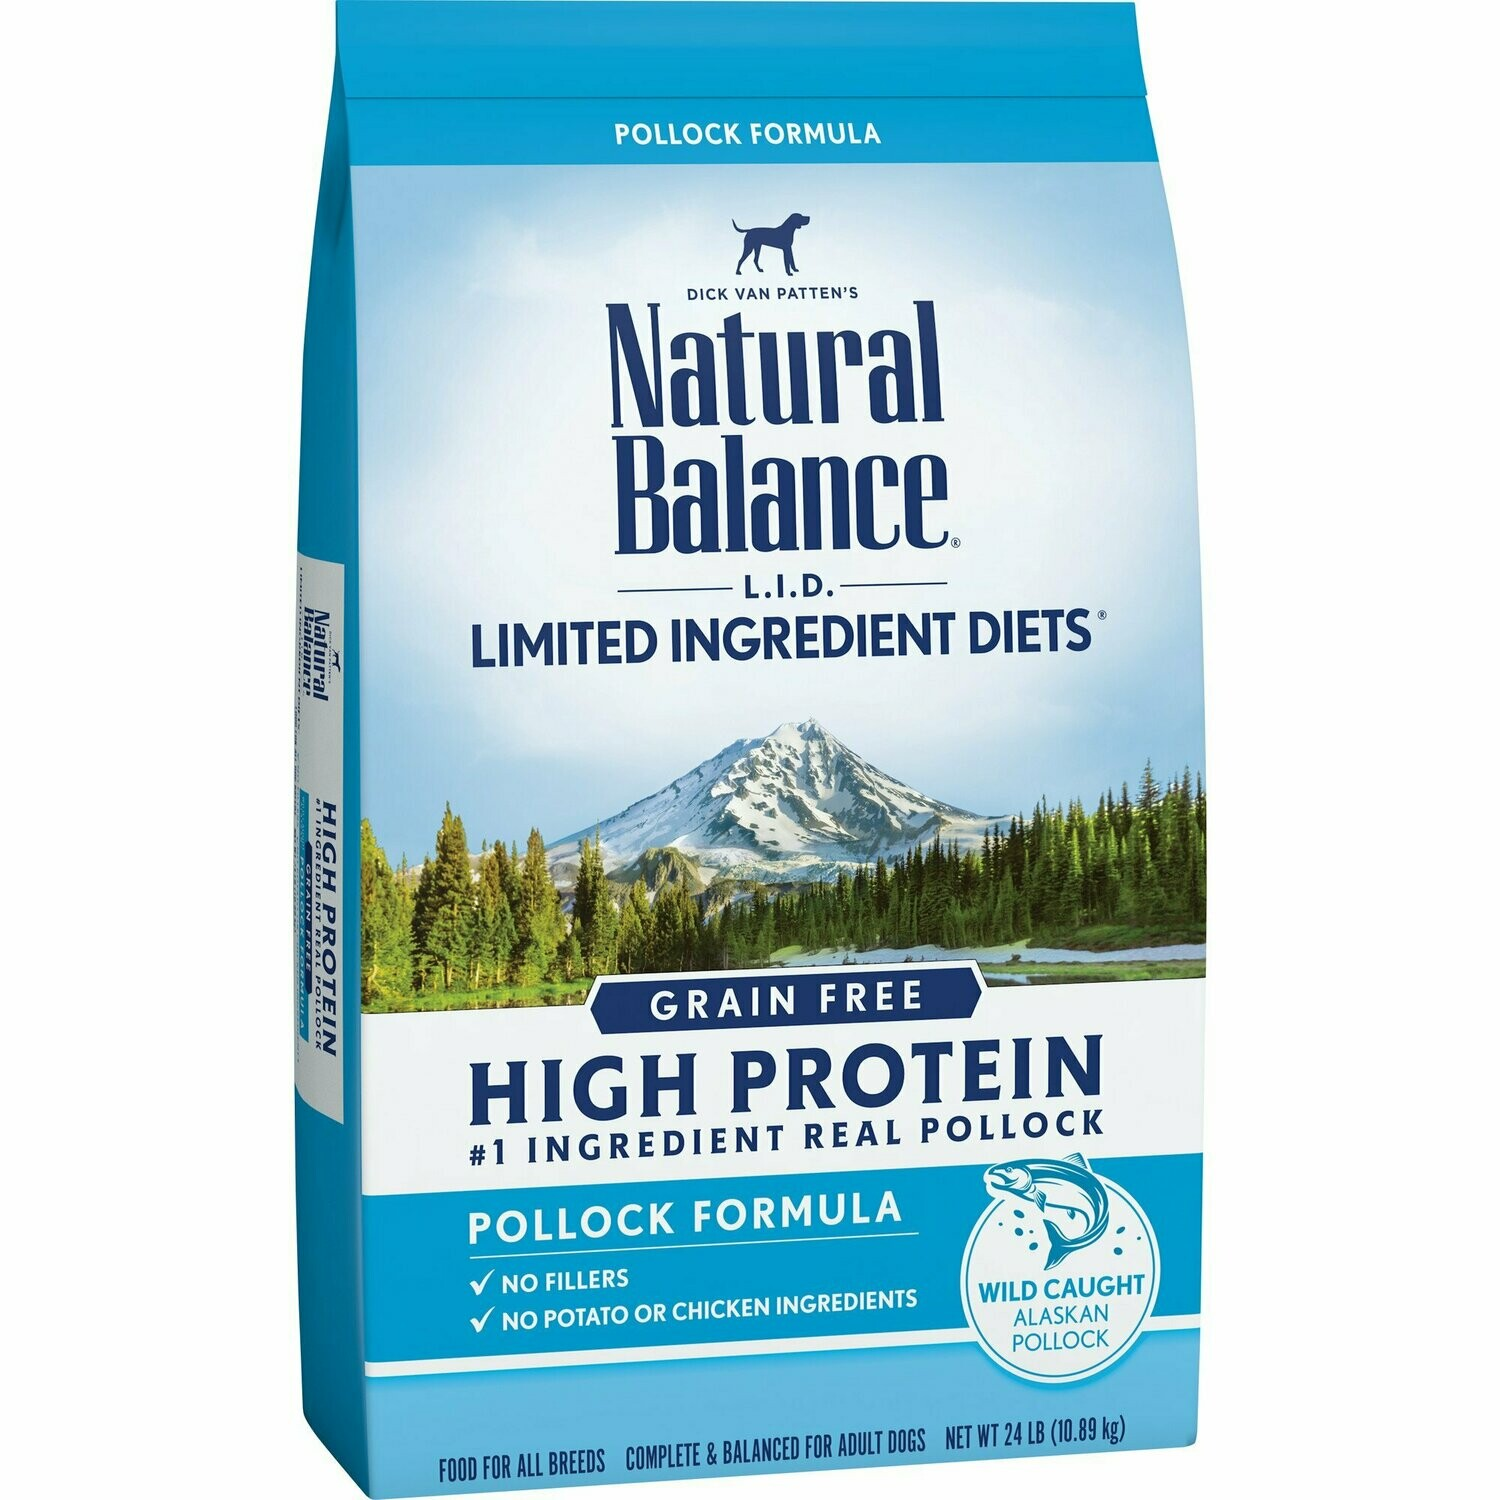 Natural Balance Limited Ingredient Diets High Protein Grain Free Pollock Formula 24 lb (9/19) (A.R4)